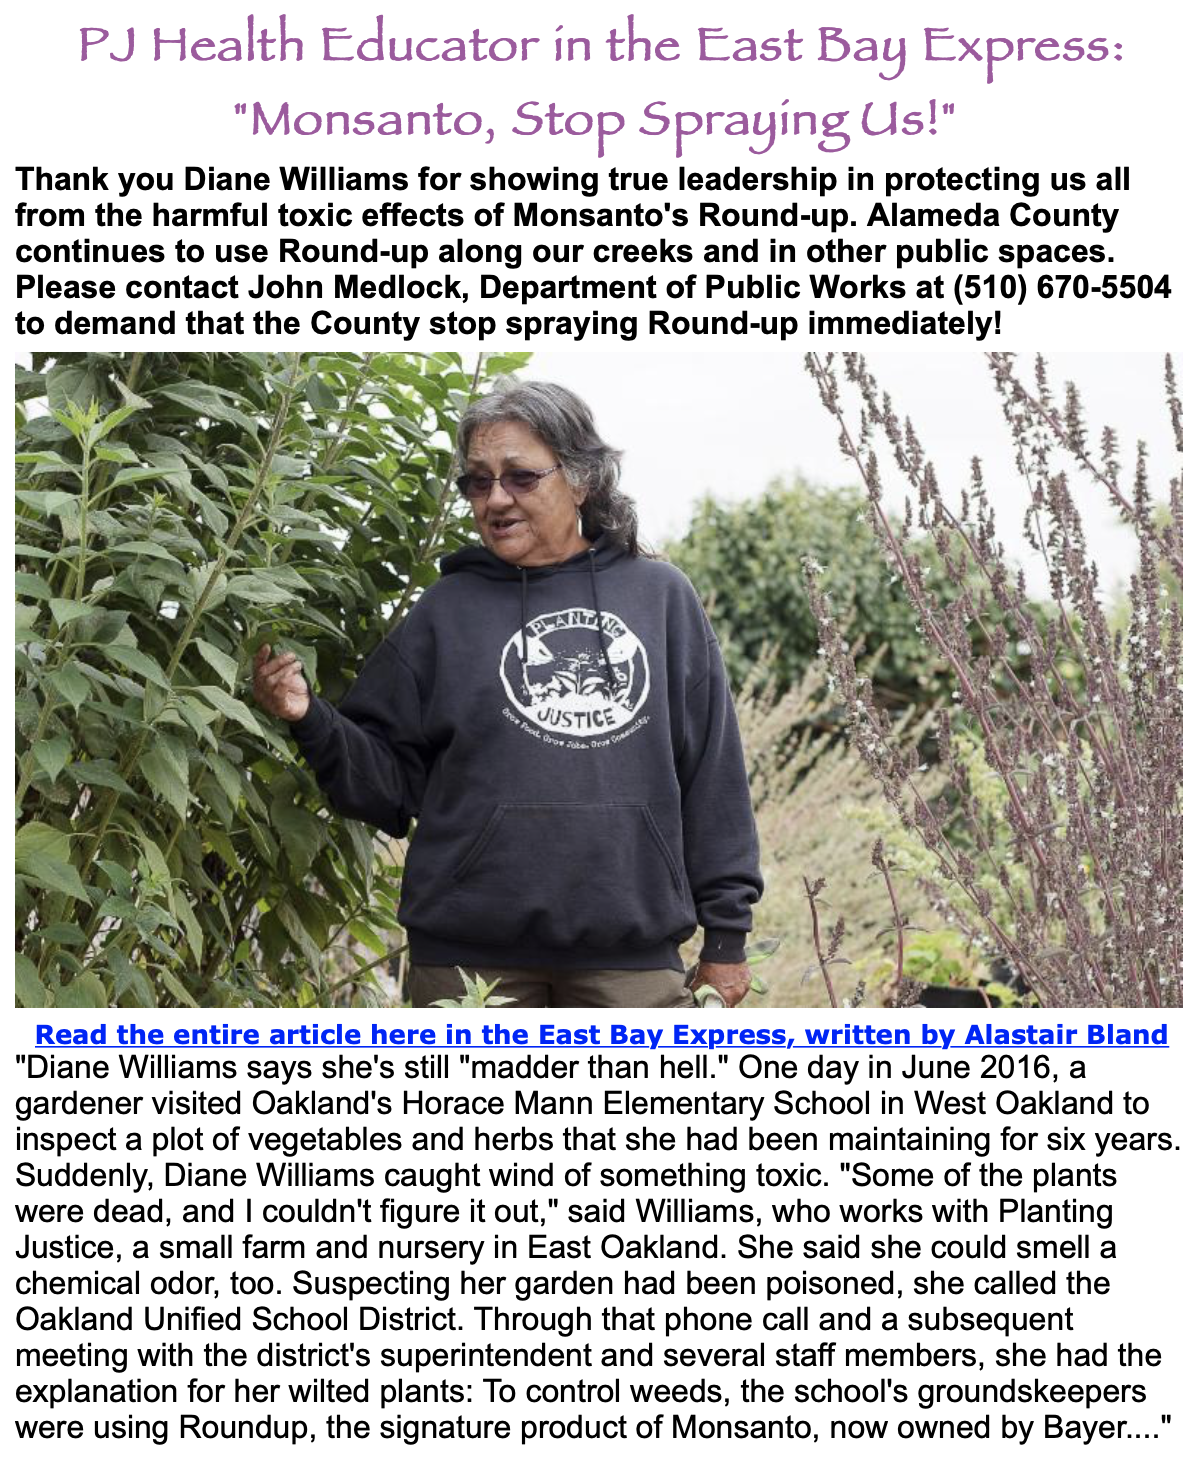 Want to work with Planting Justice? Screen+Shot+2019 05 02+at+2.59.52+PM